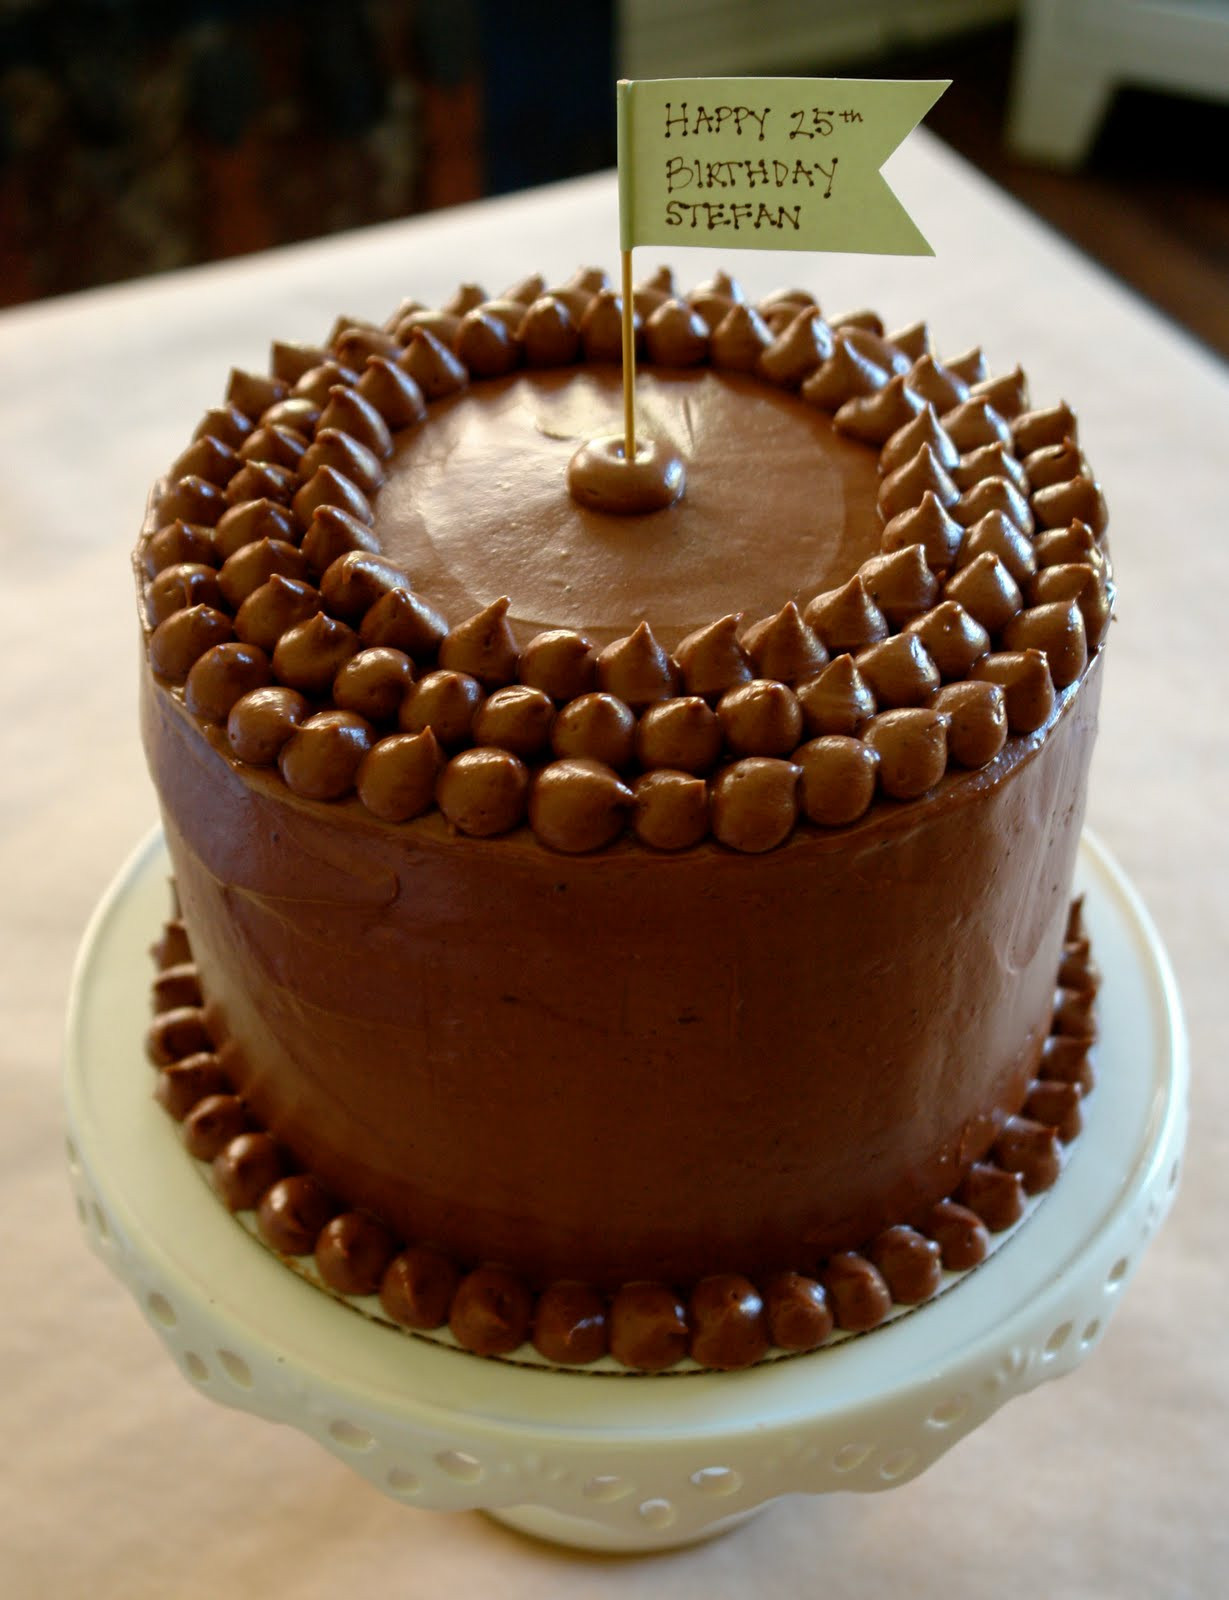 Best ideas about Chocolate Birthday Cake Recipes . Save or Pin K Bakes 4 Layer Birthday Cake Now.